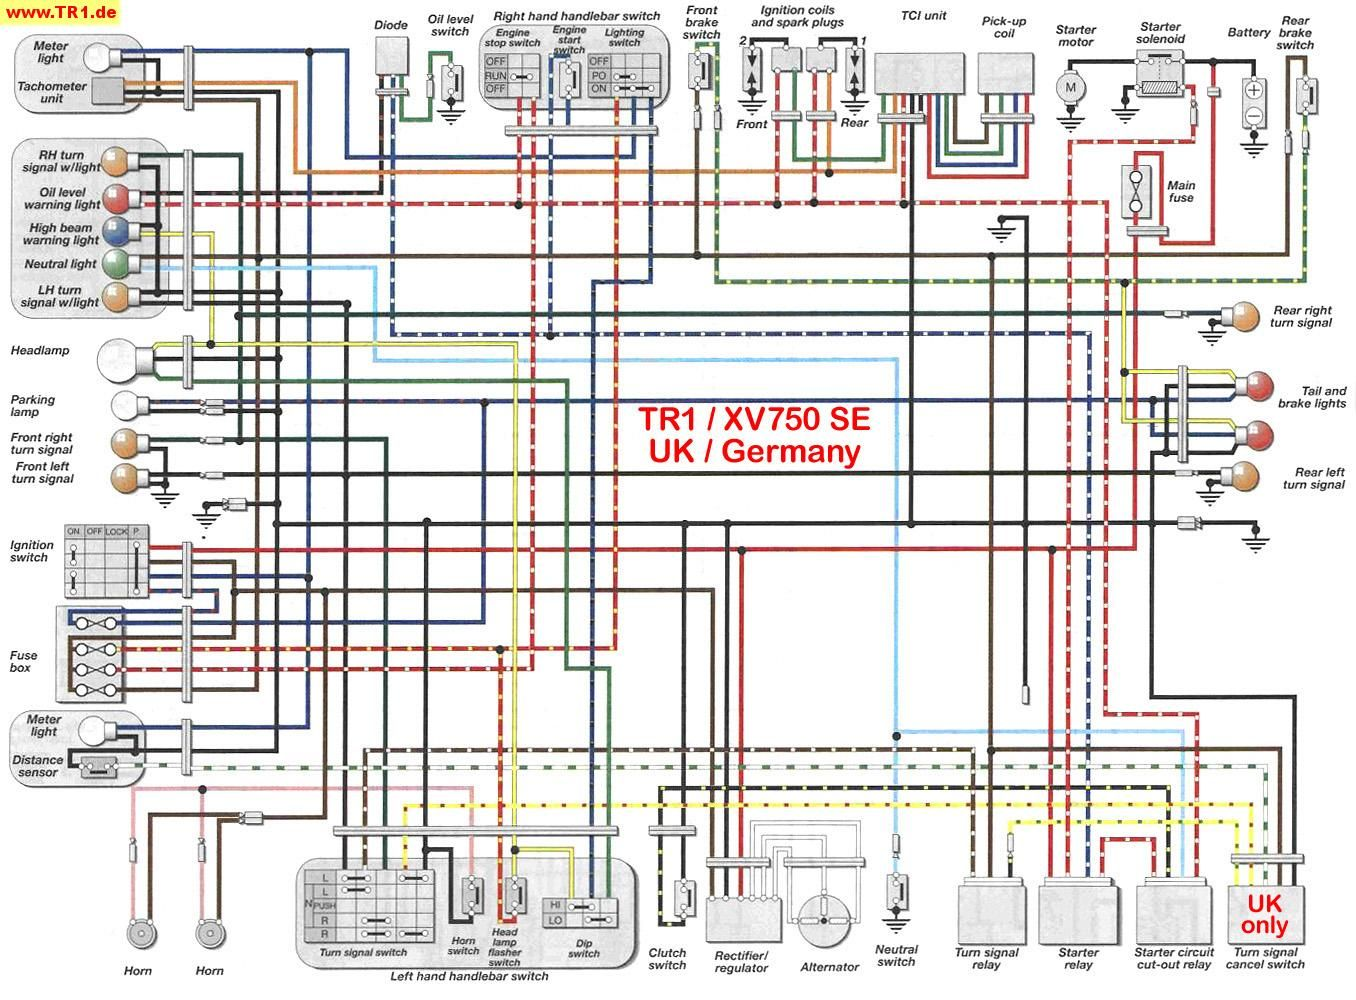 TR1/XV1000/XV920 wiring diagrams - Manfred's TR1. Page - All about YAMAHA  TR1. / XV1000 / XV920 | Yamaha virago, Electrical diagram, DiagramPinterest